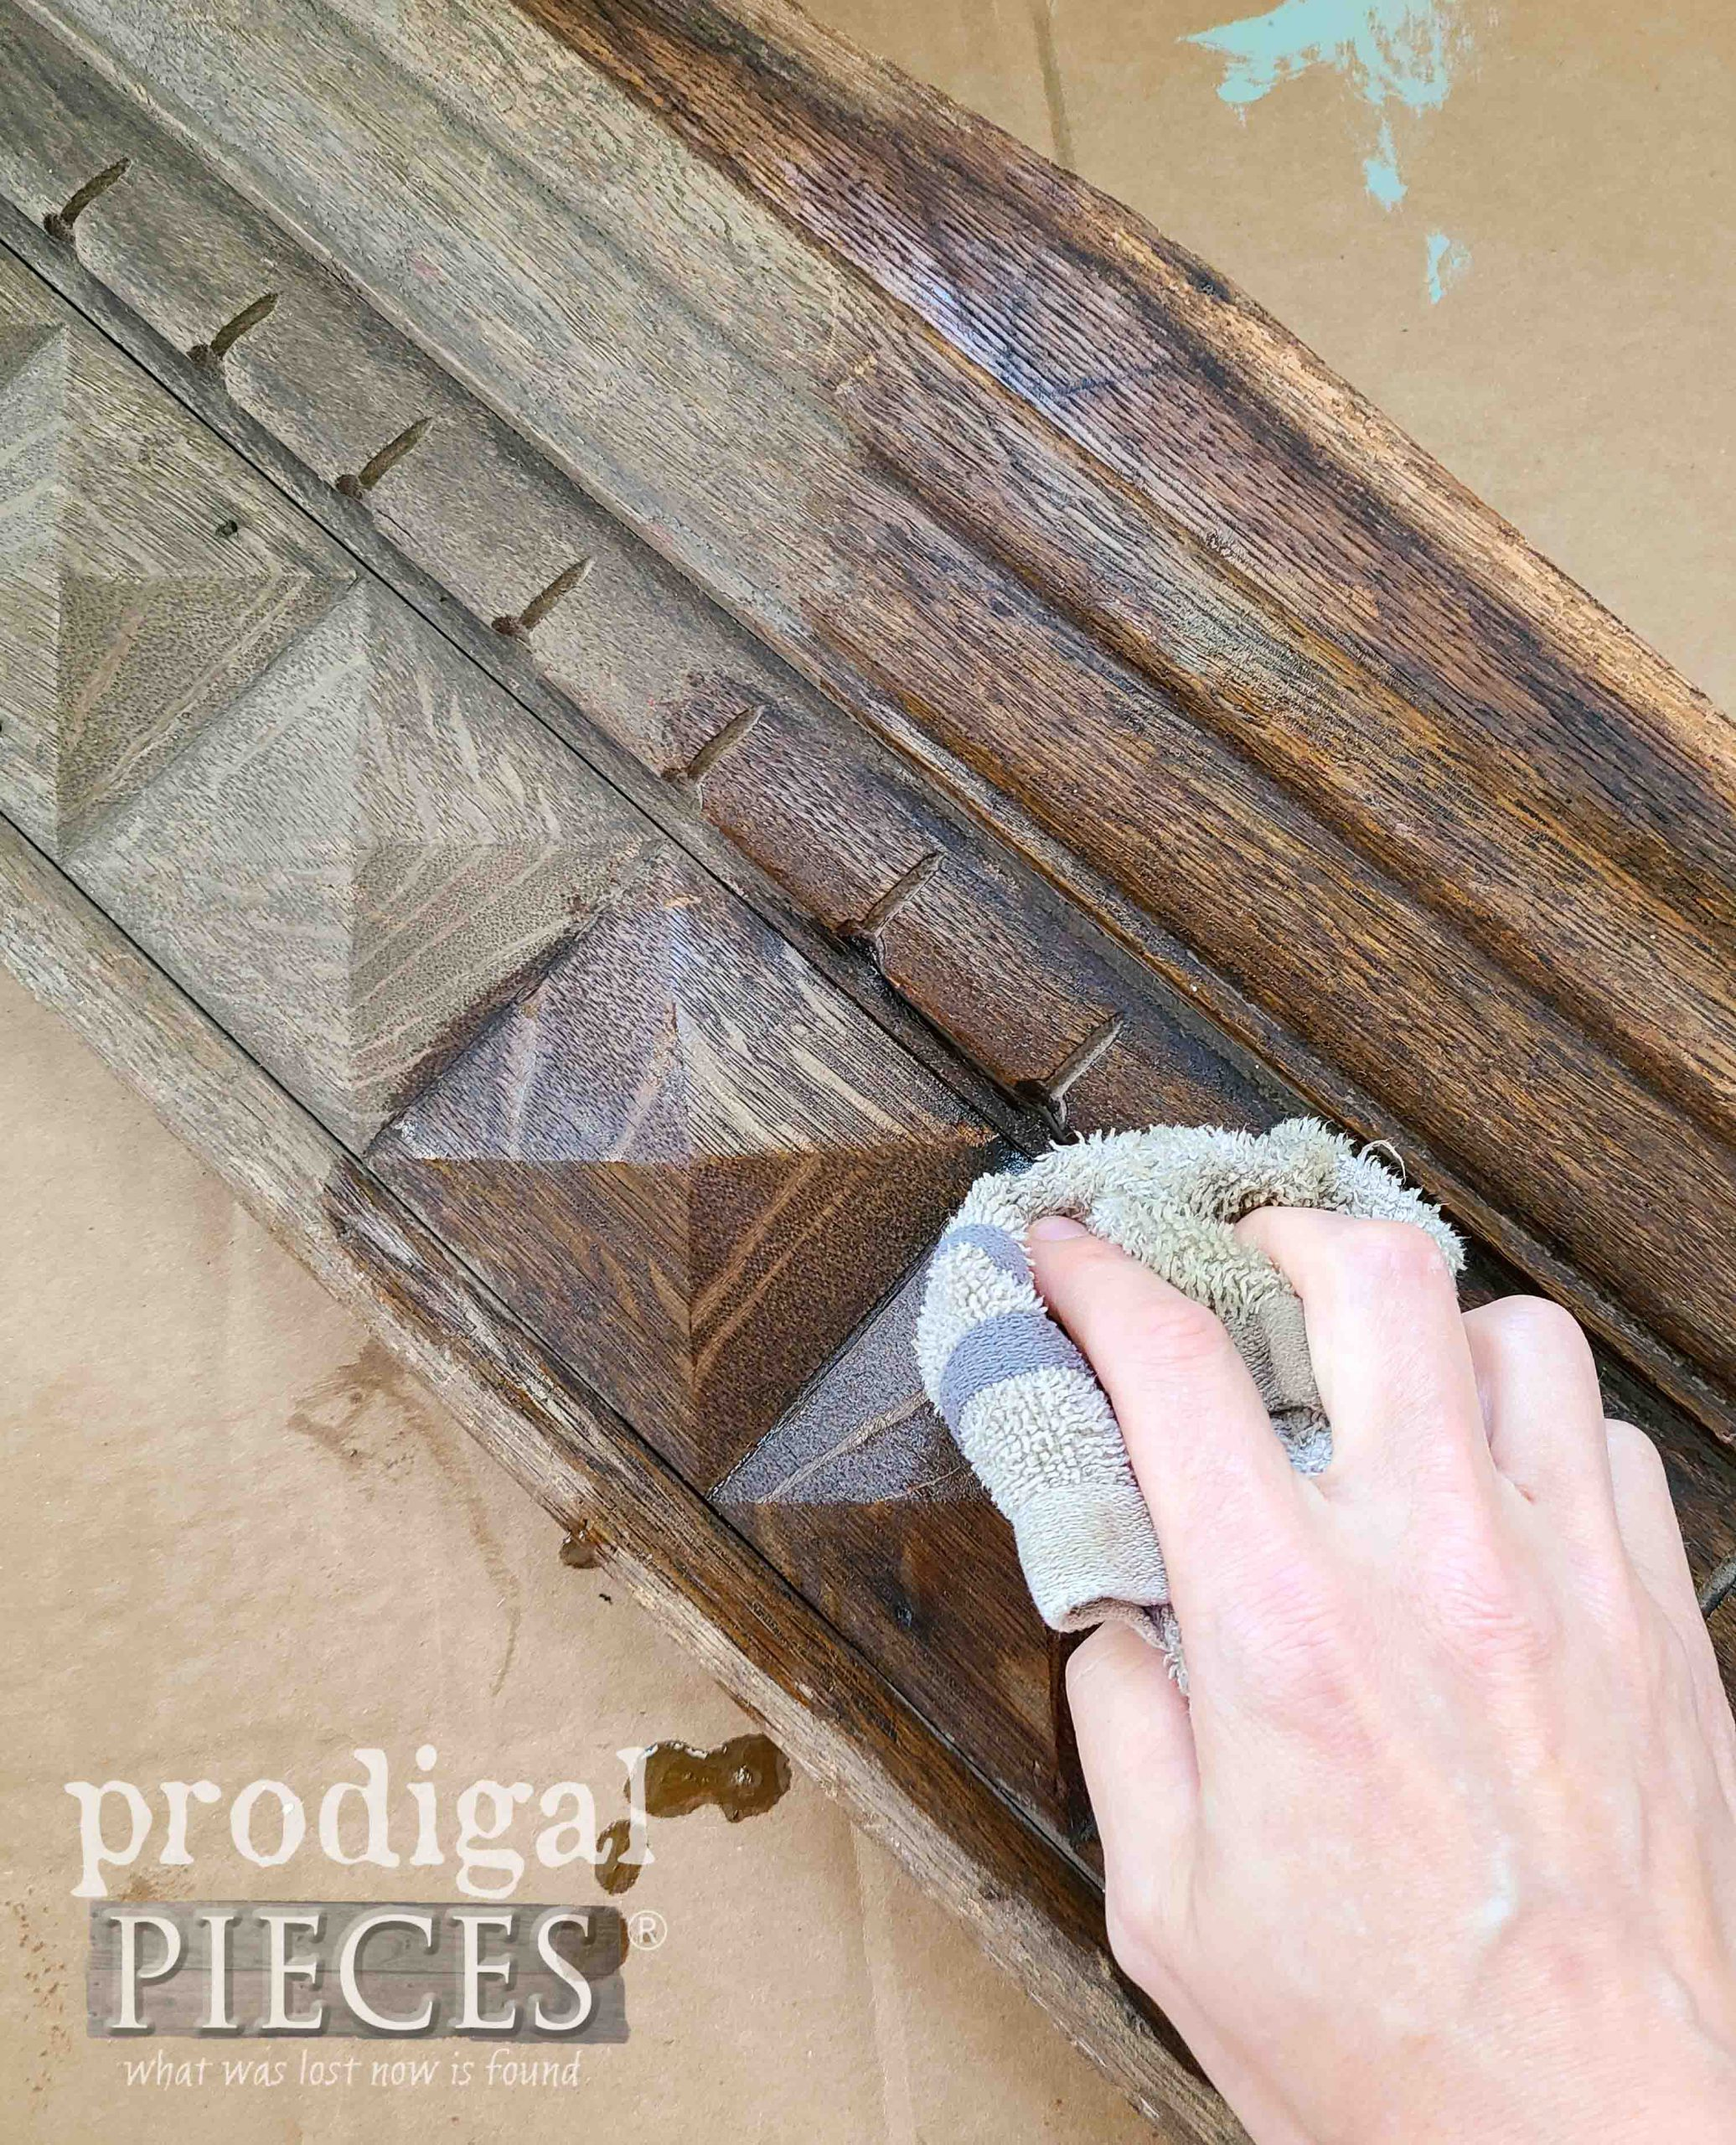 Oiling Old Wood for Restoration by Prodigal Pieces   prodigalpieces.com #prodigalpieces